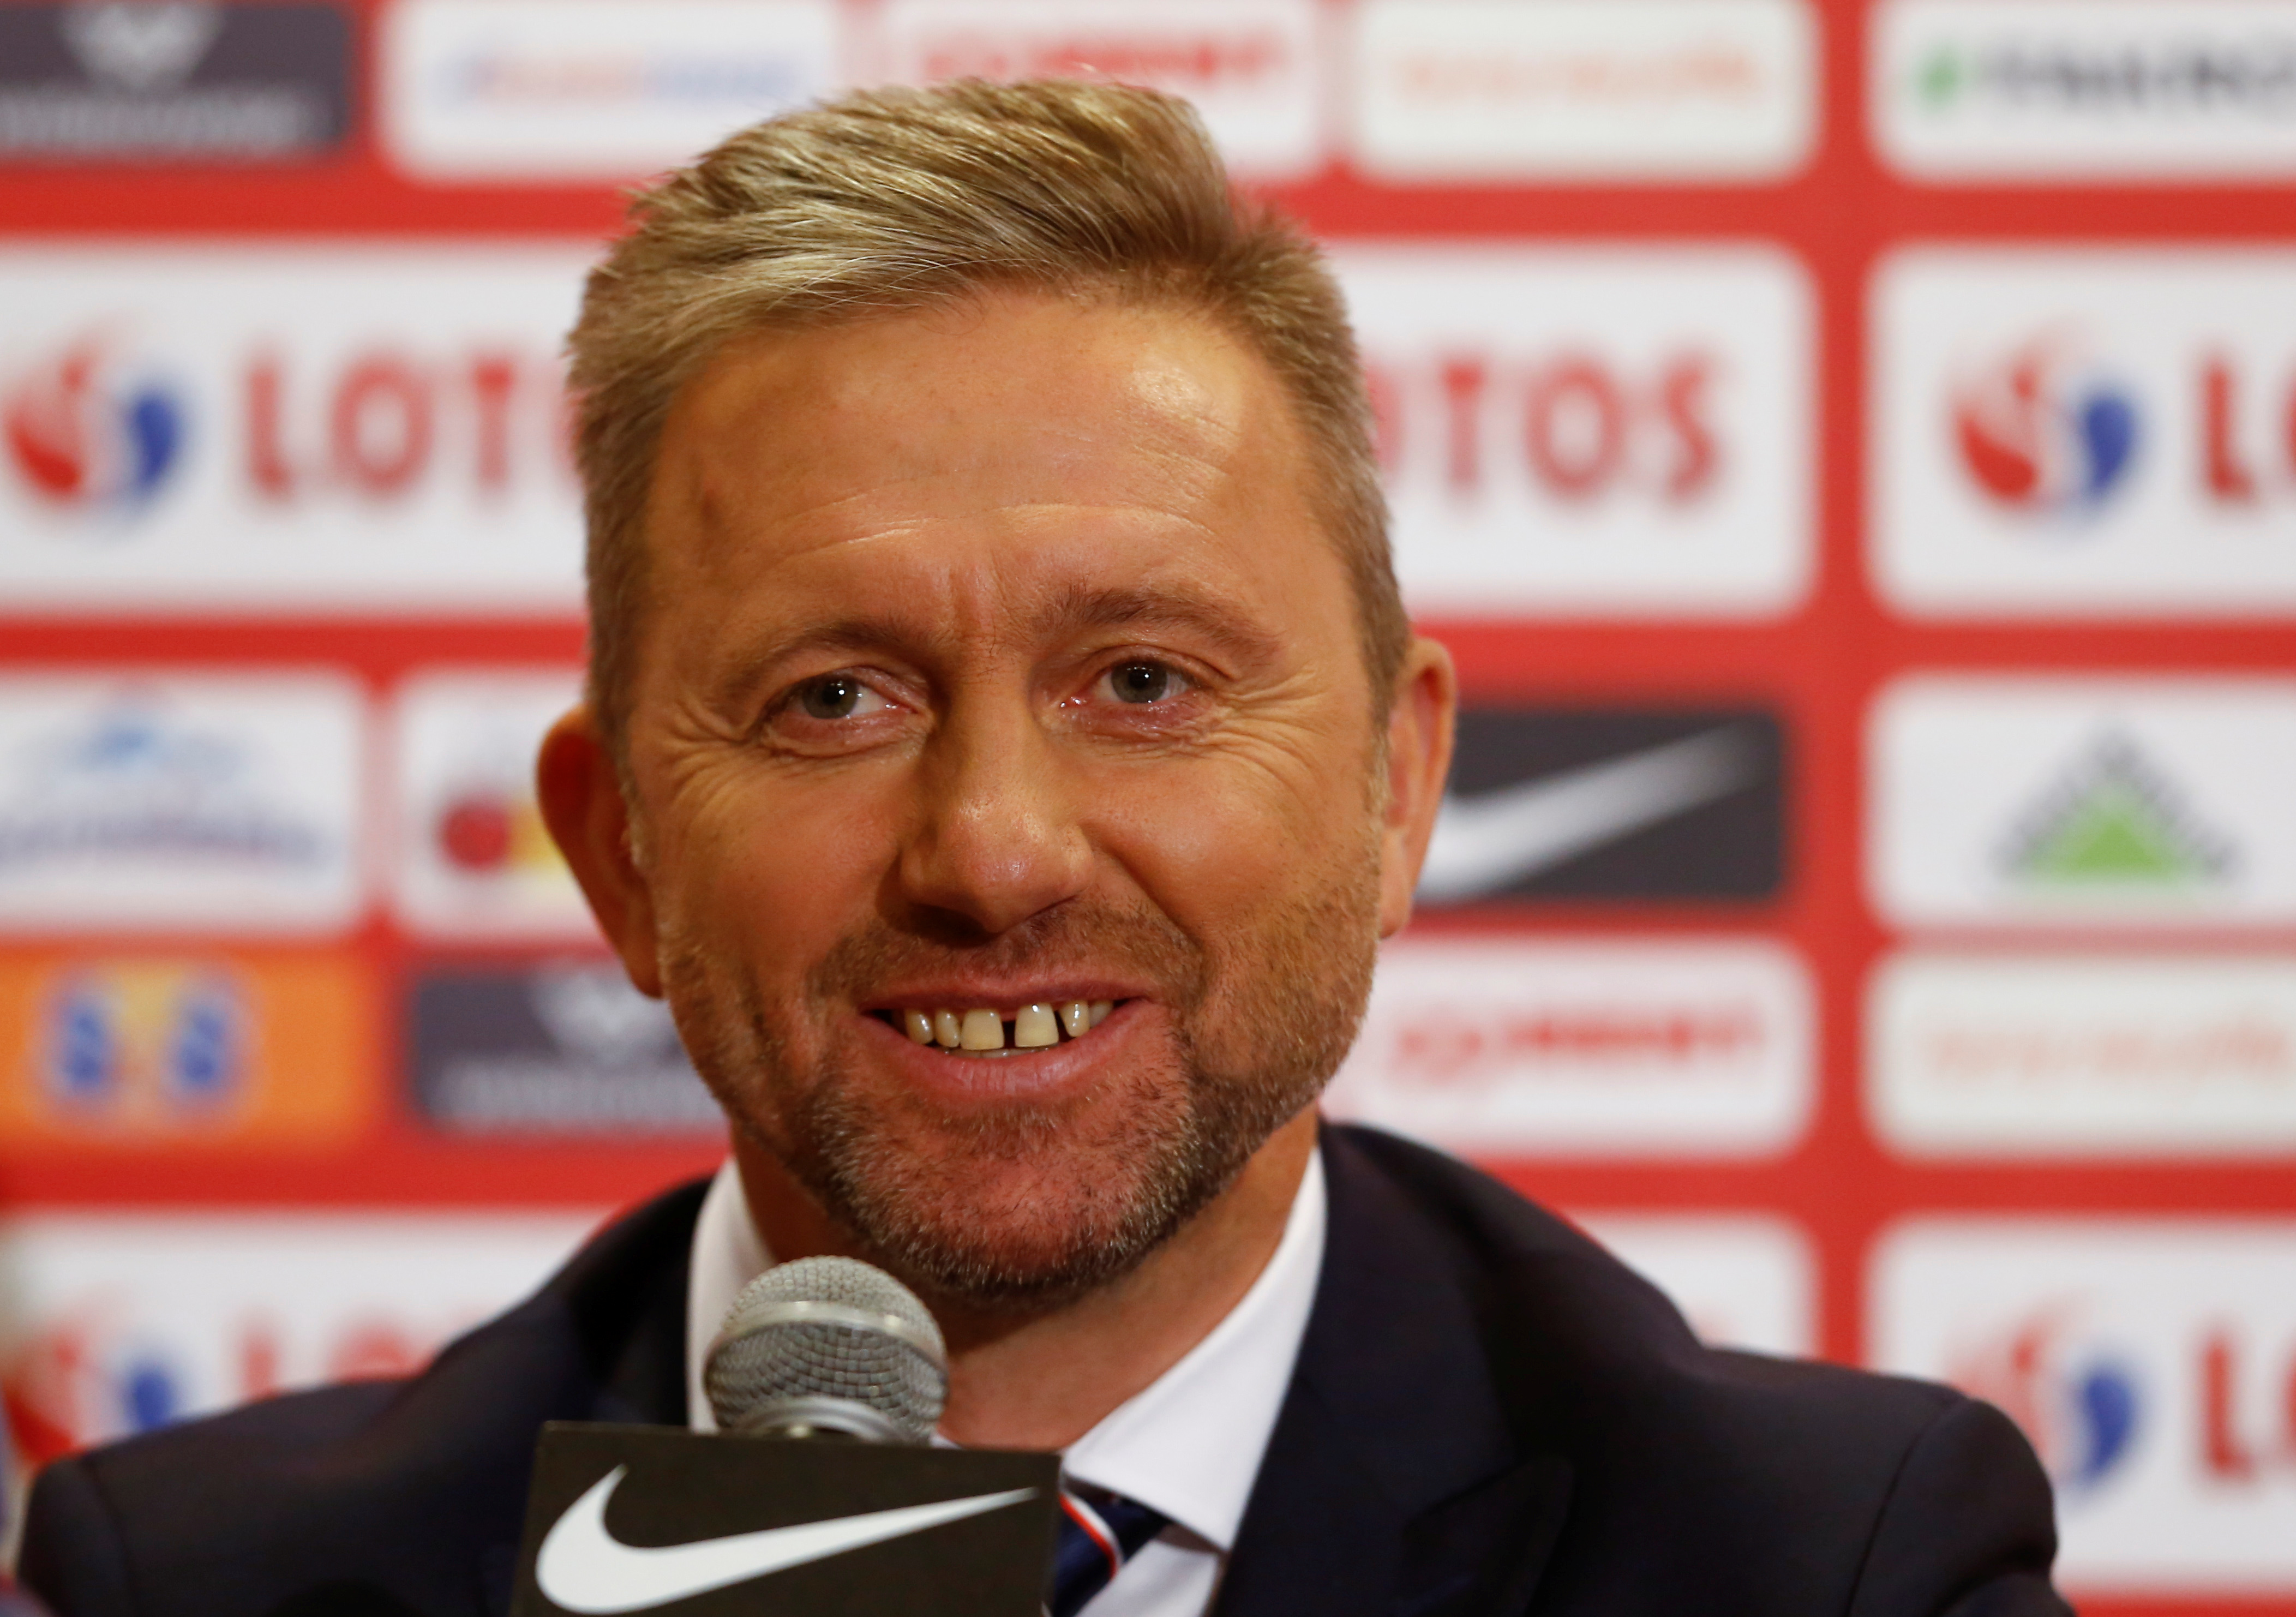 Jerzy Brzeczek, new coach for the Polish national soccer team smiles as he attends a news conference at National Stadium in Warsaw, Poland July 23, 2018. REUTERS/Kacper Pempel